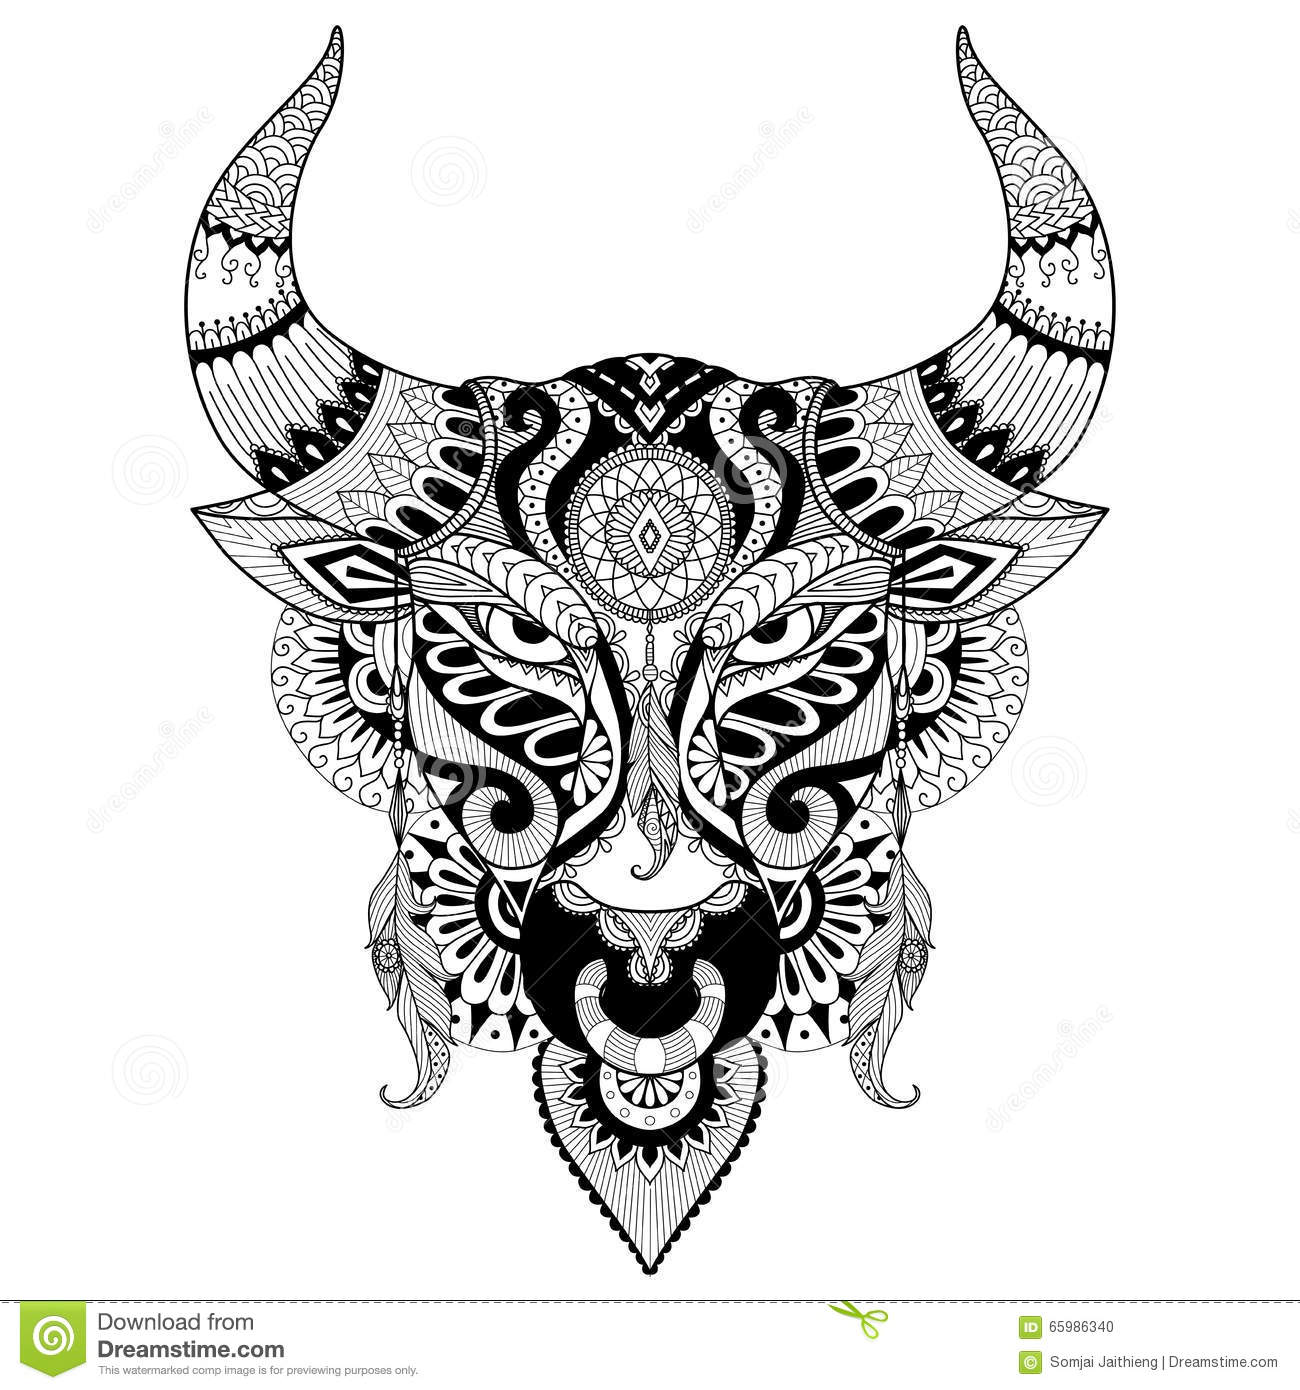 Drawing Angry Bull For Coloring Book For Adult Tattoo T Shirt